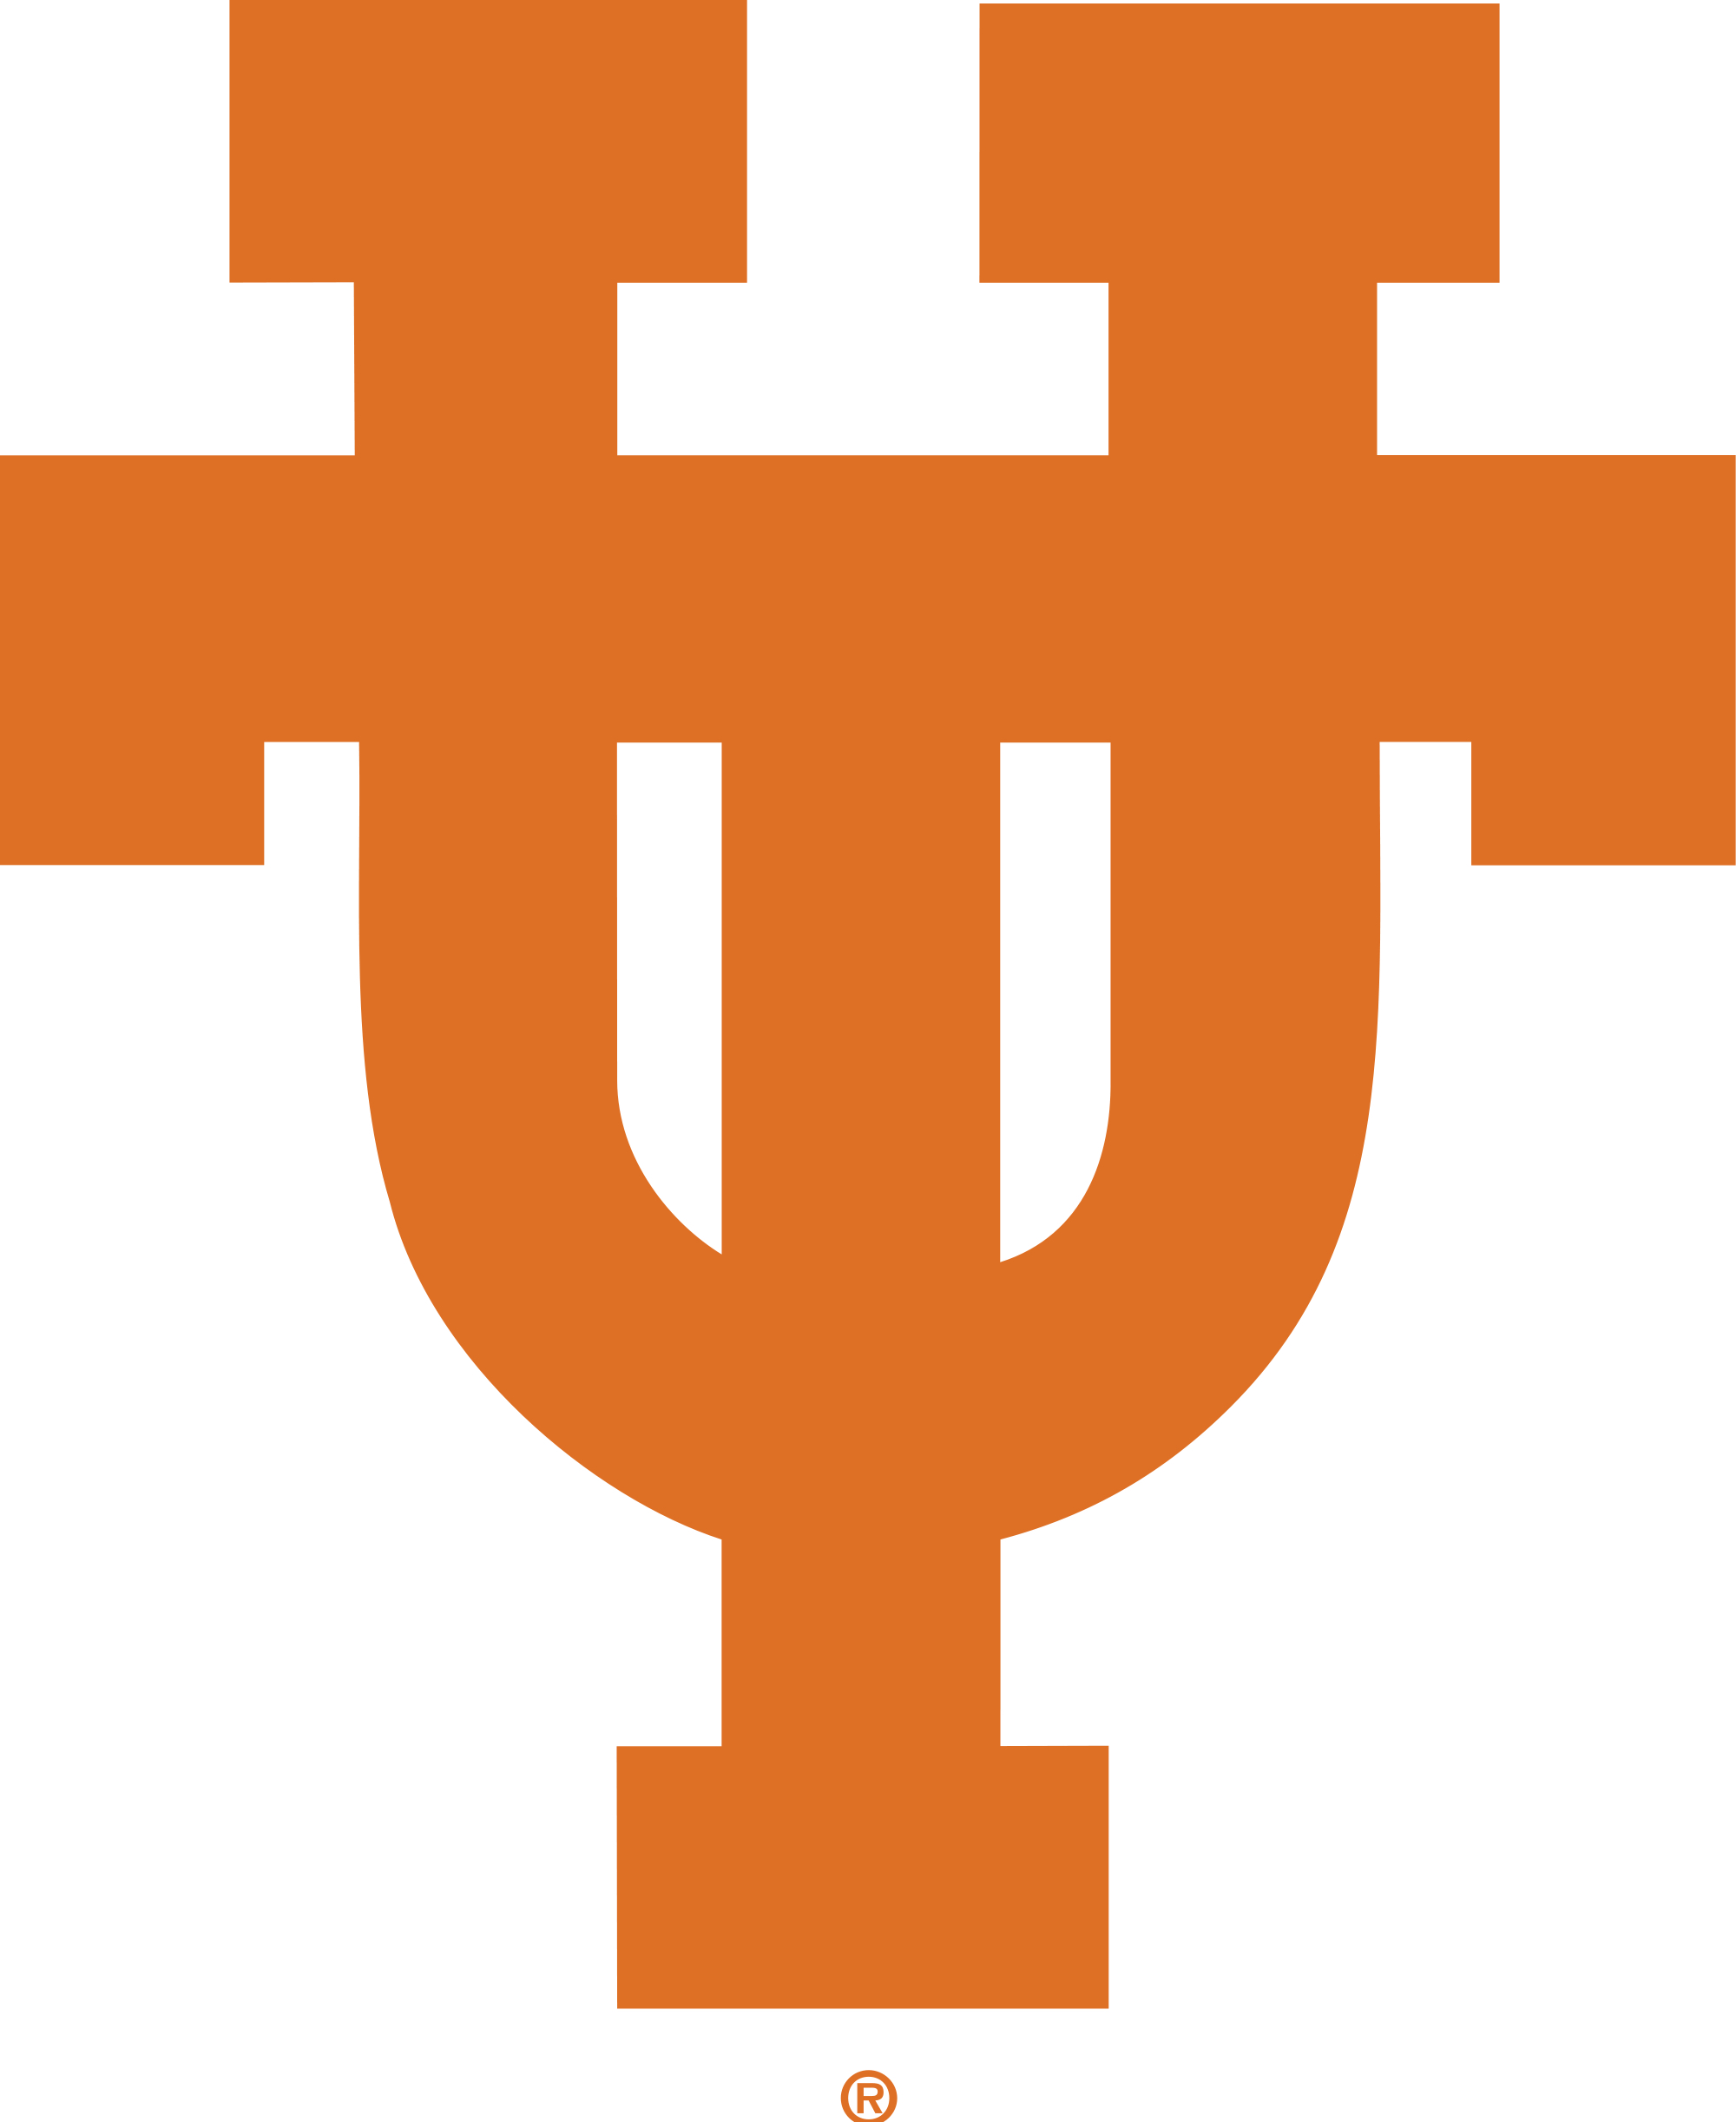 University of Texas Longhorn Decal for YETI / RTIC by MotherMeI.